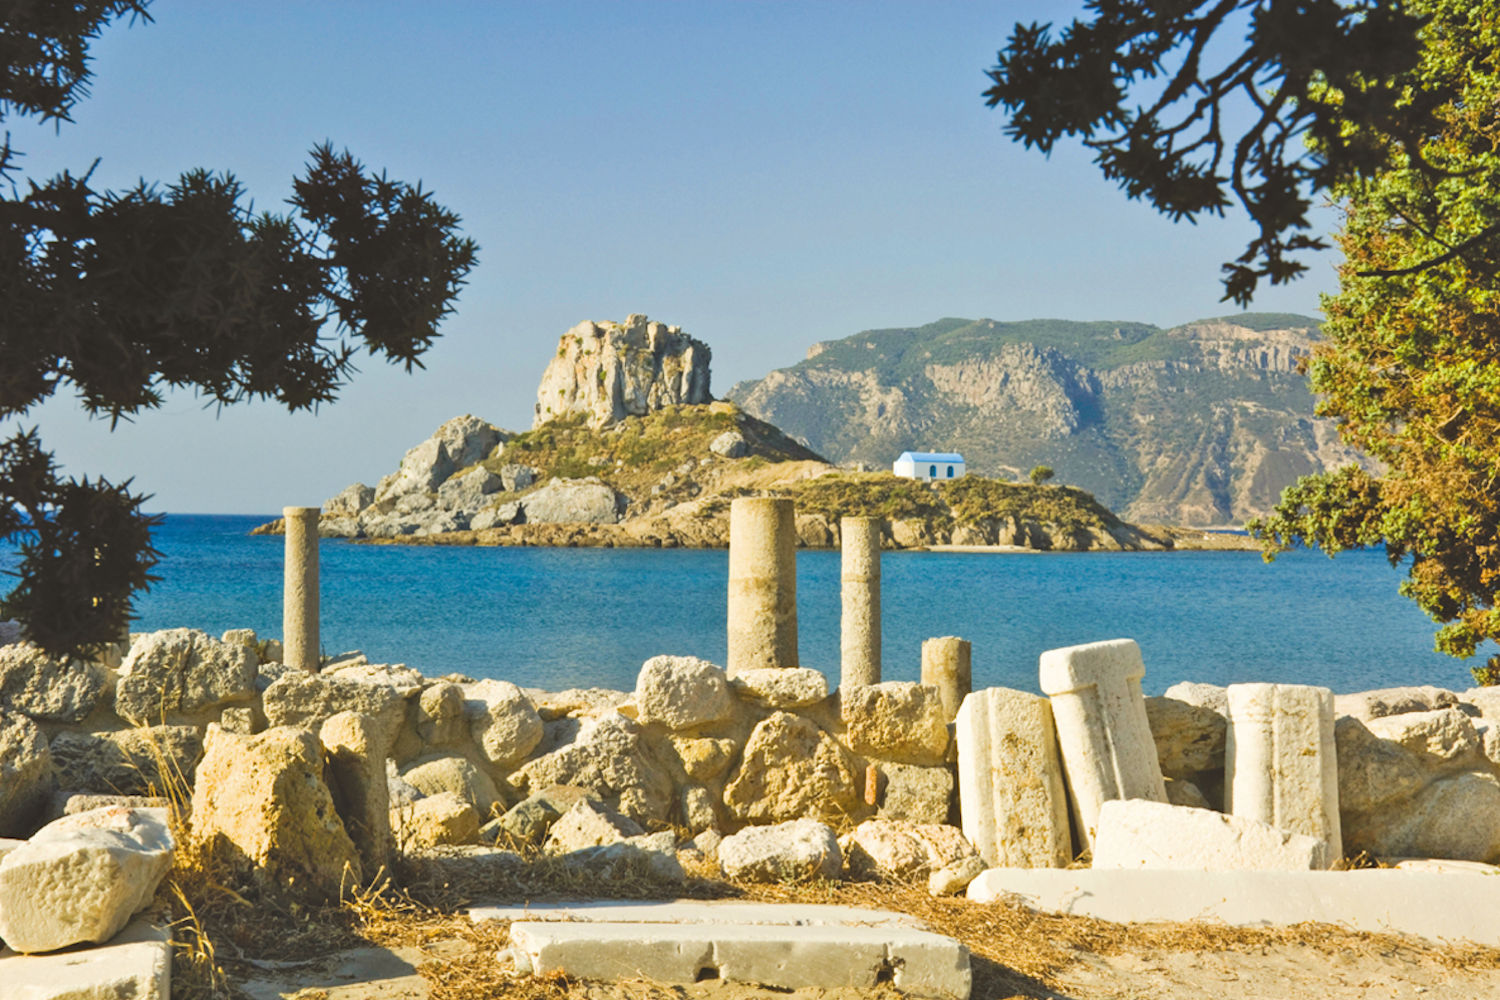 View of Kastri Island from Agios Stephanos Ruins